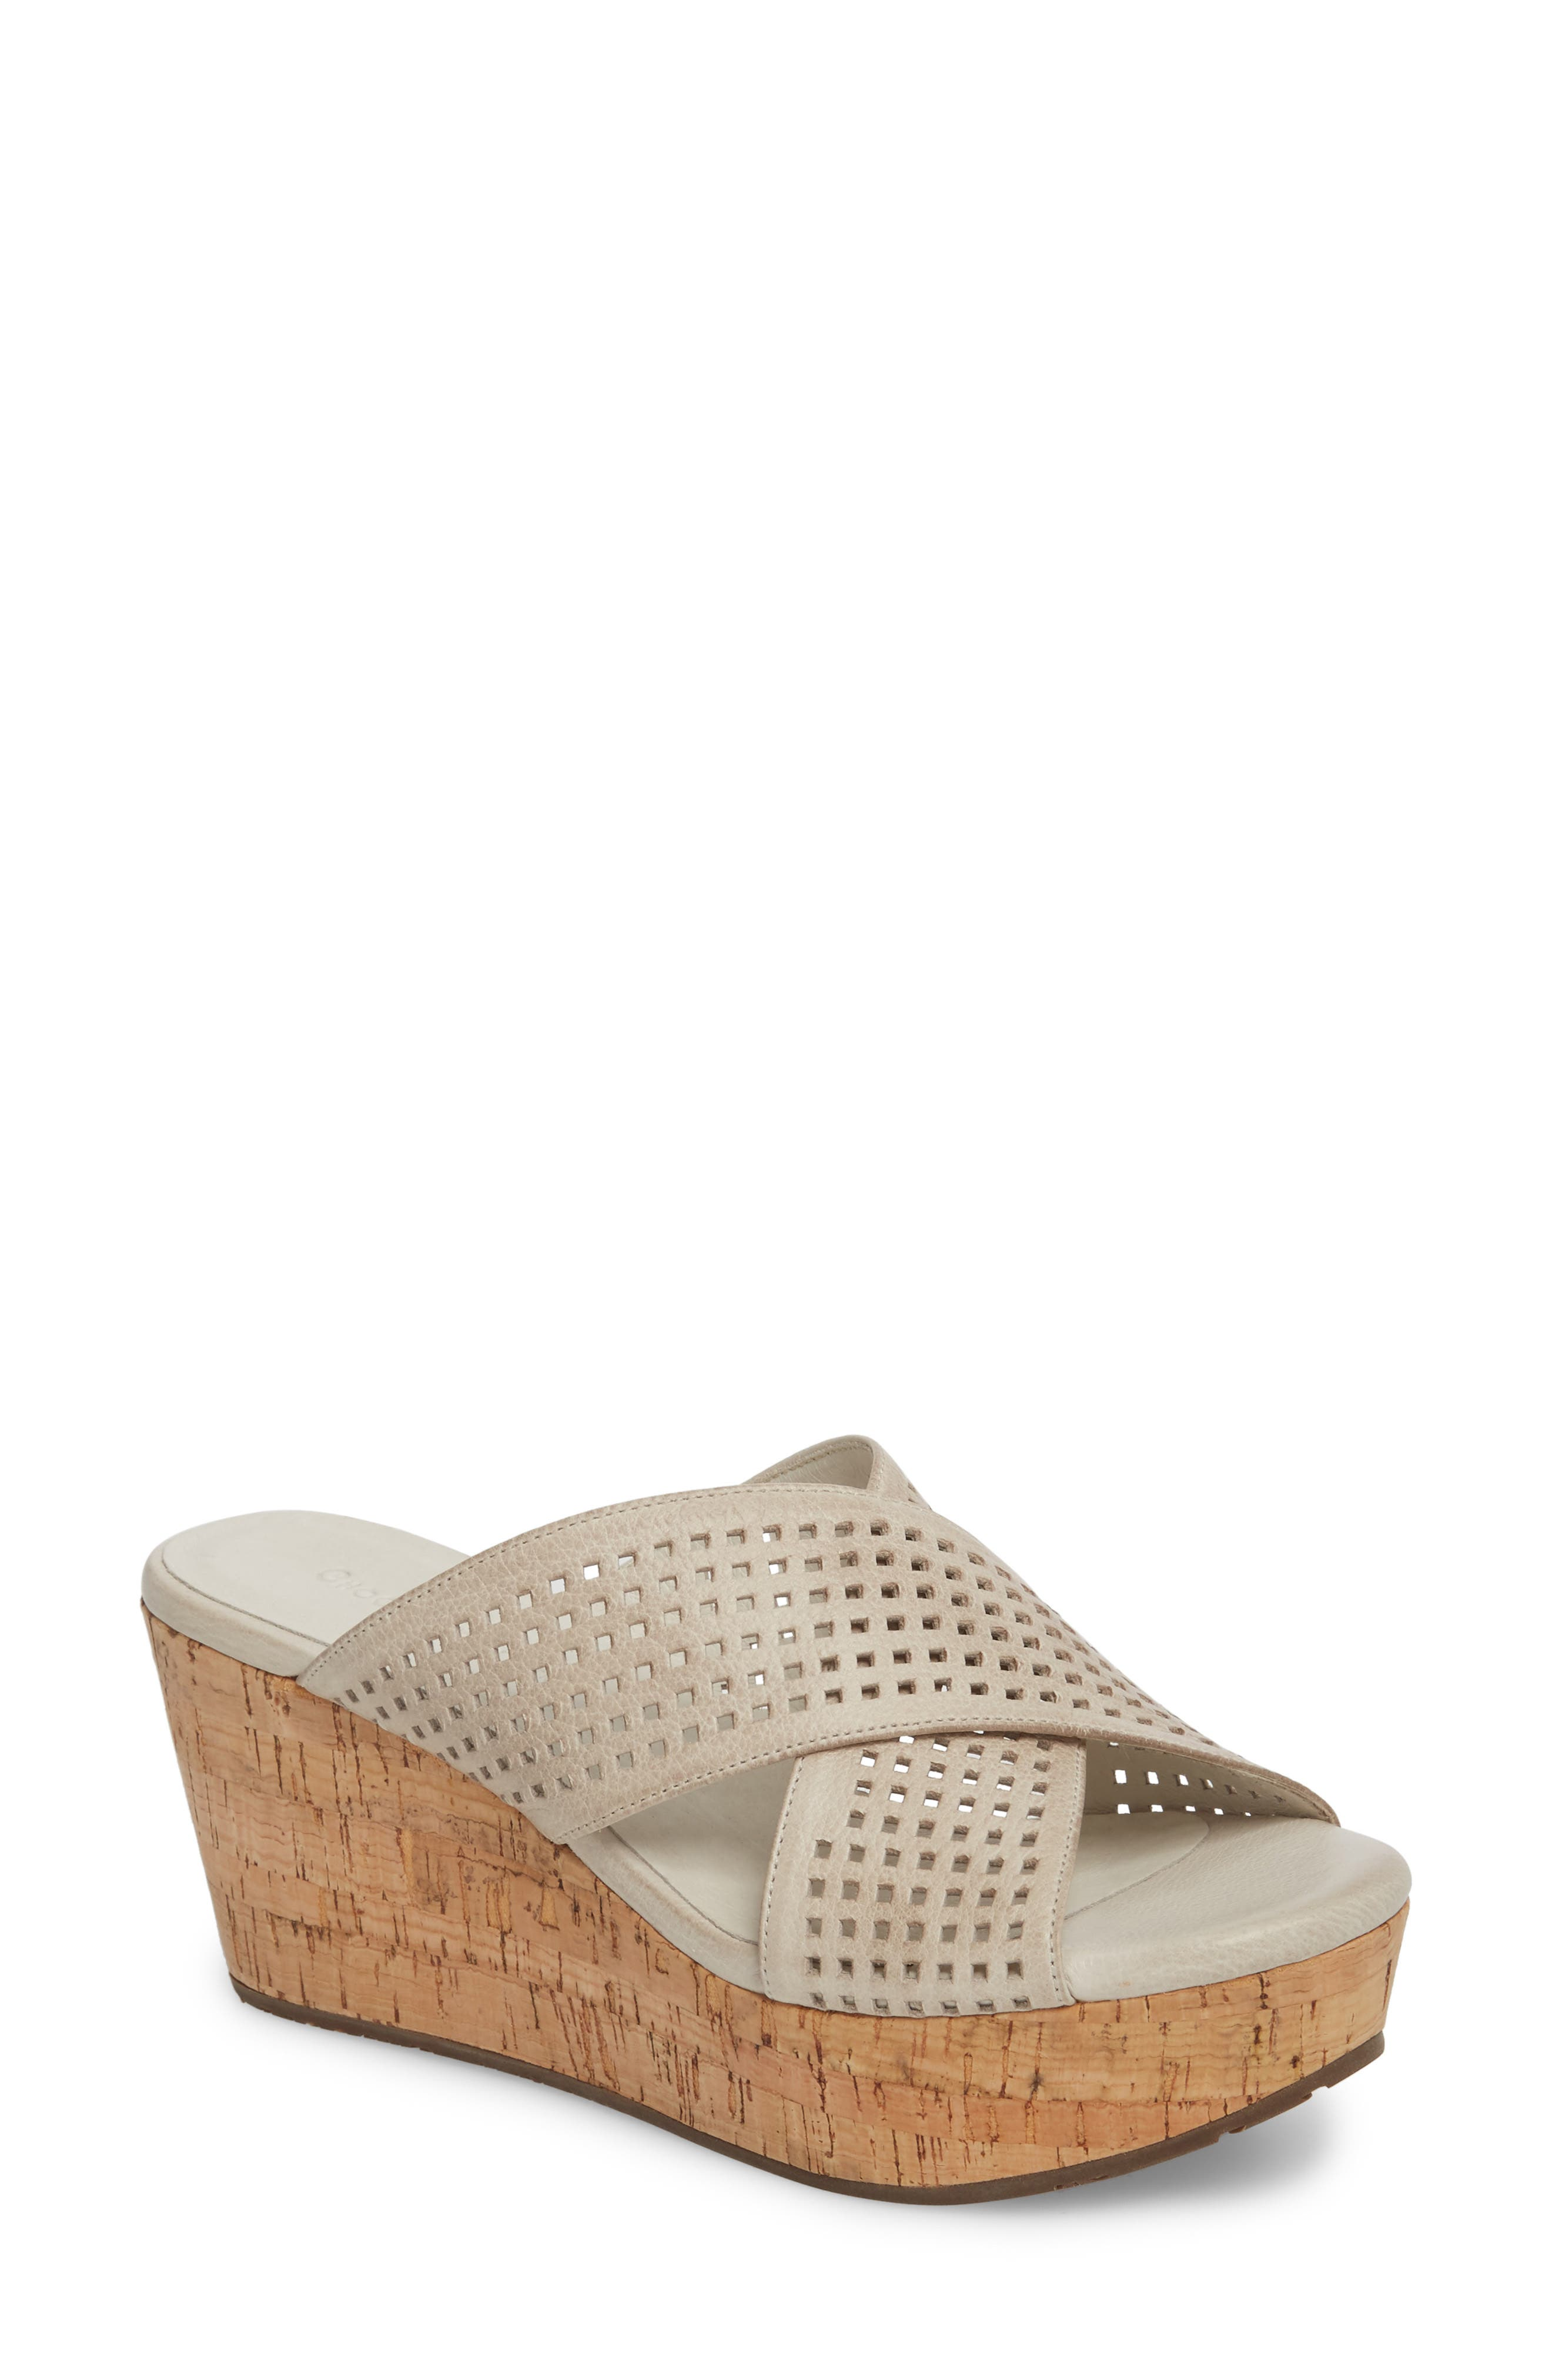 Wamblee Wedge Sandal,                             Main thumbnail 1, color,                             Ice Leather